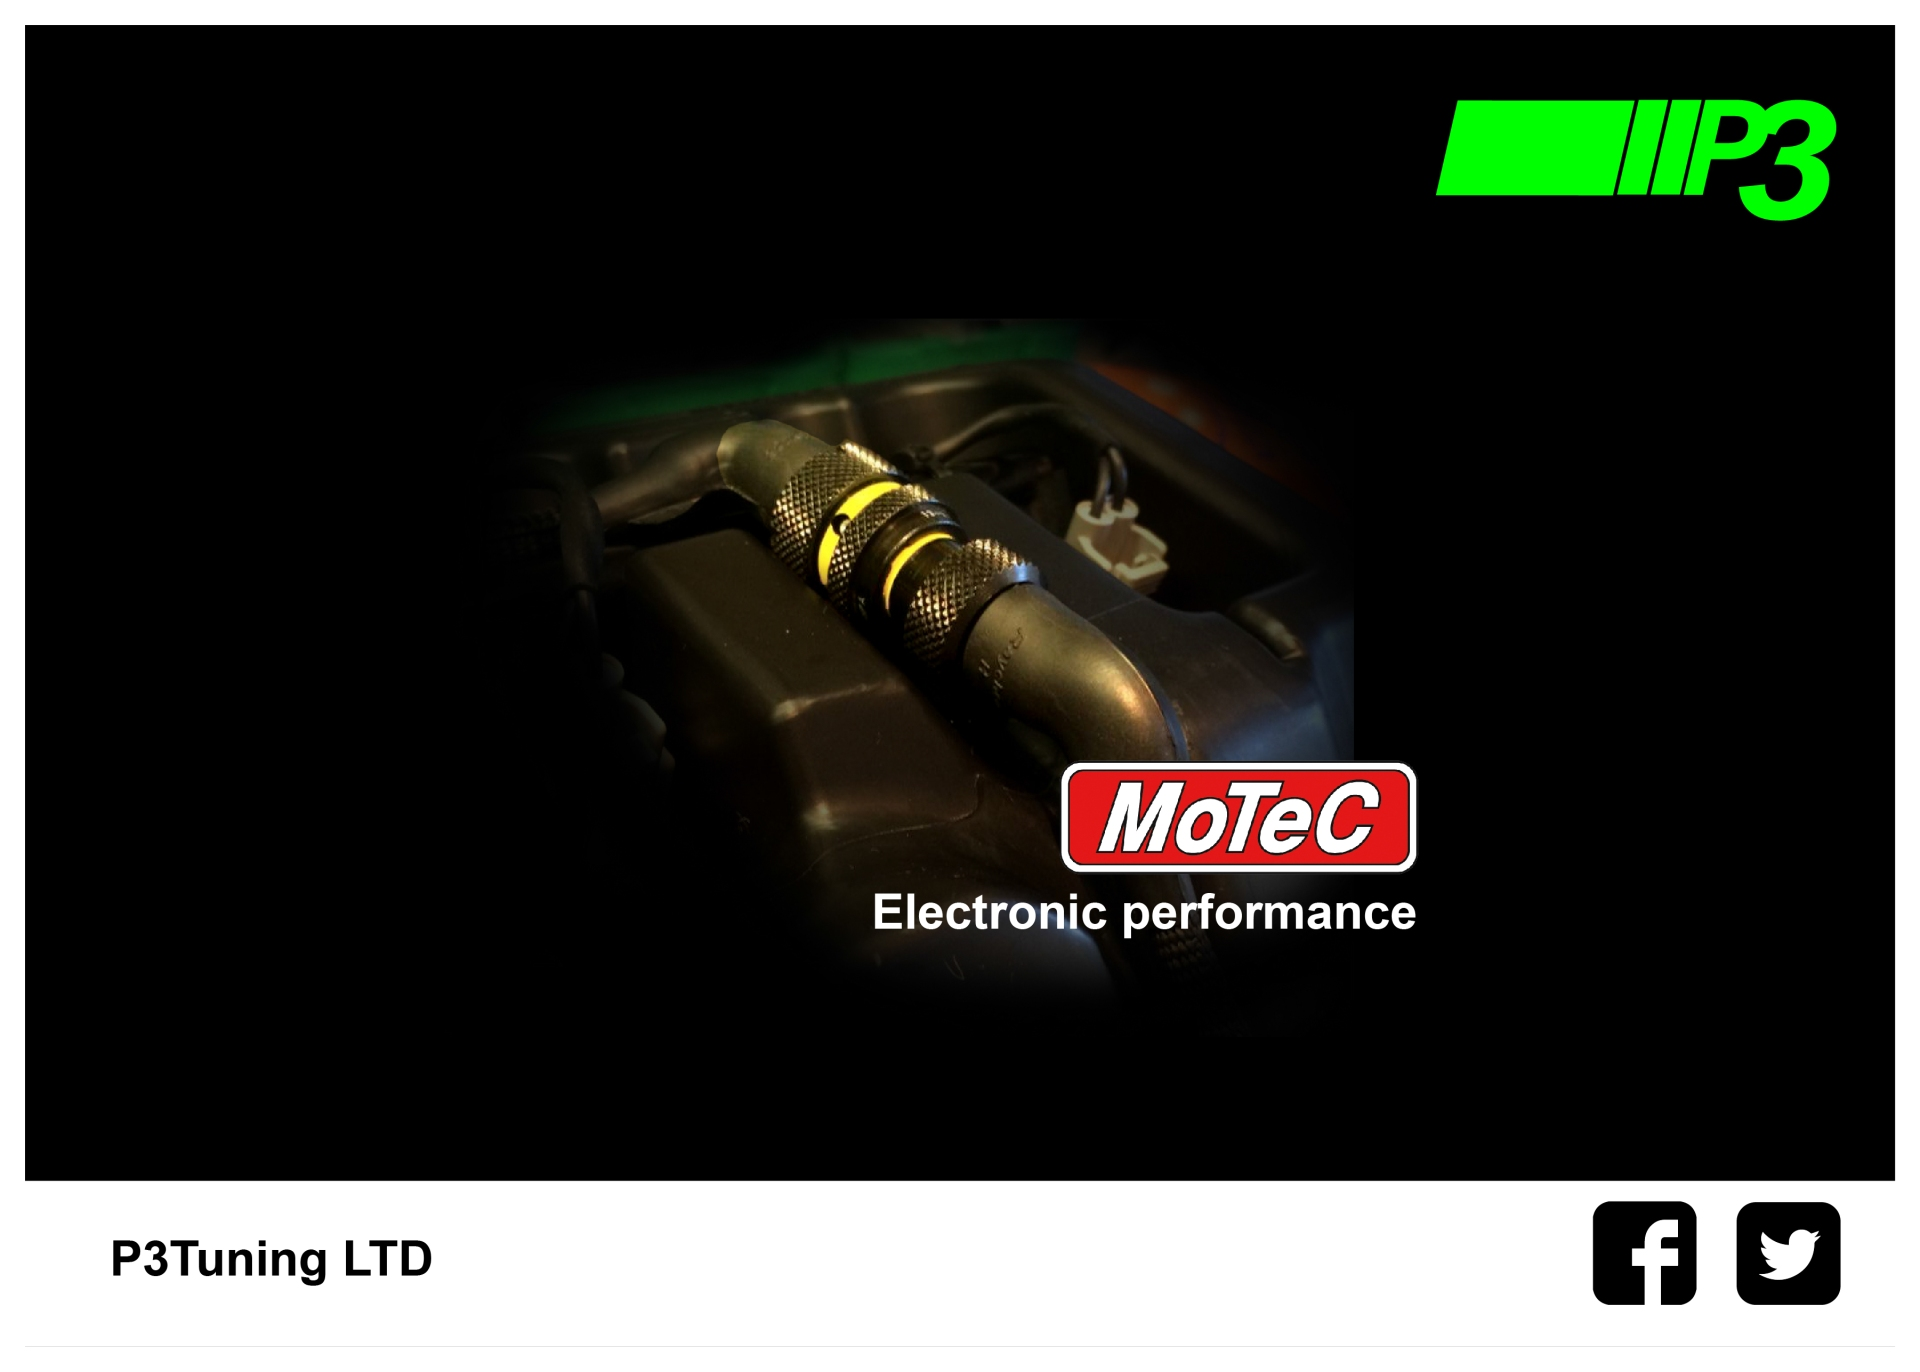 North west Liverpool Merseyside Motec ECU mapping P3Tuning